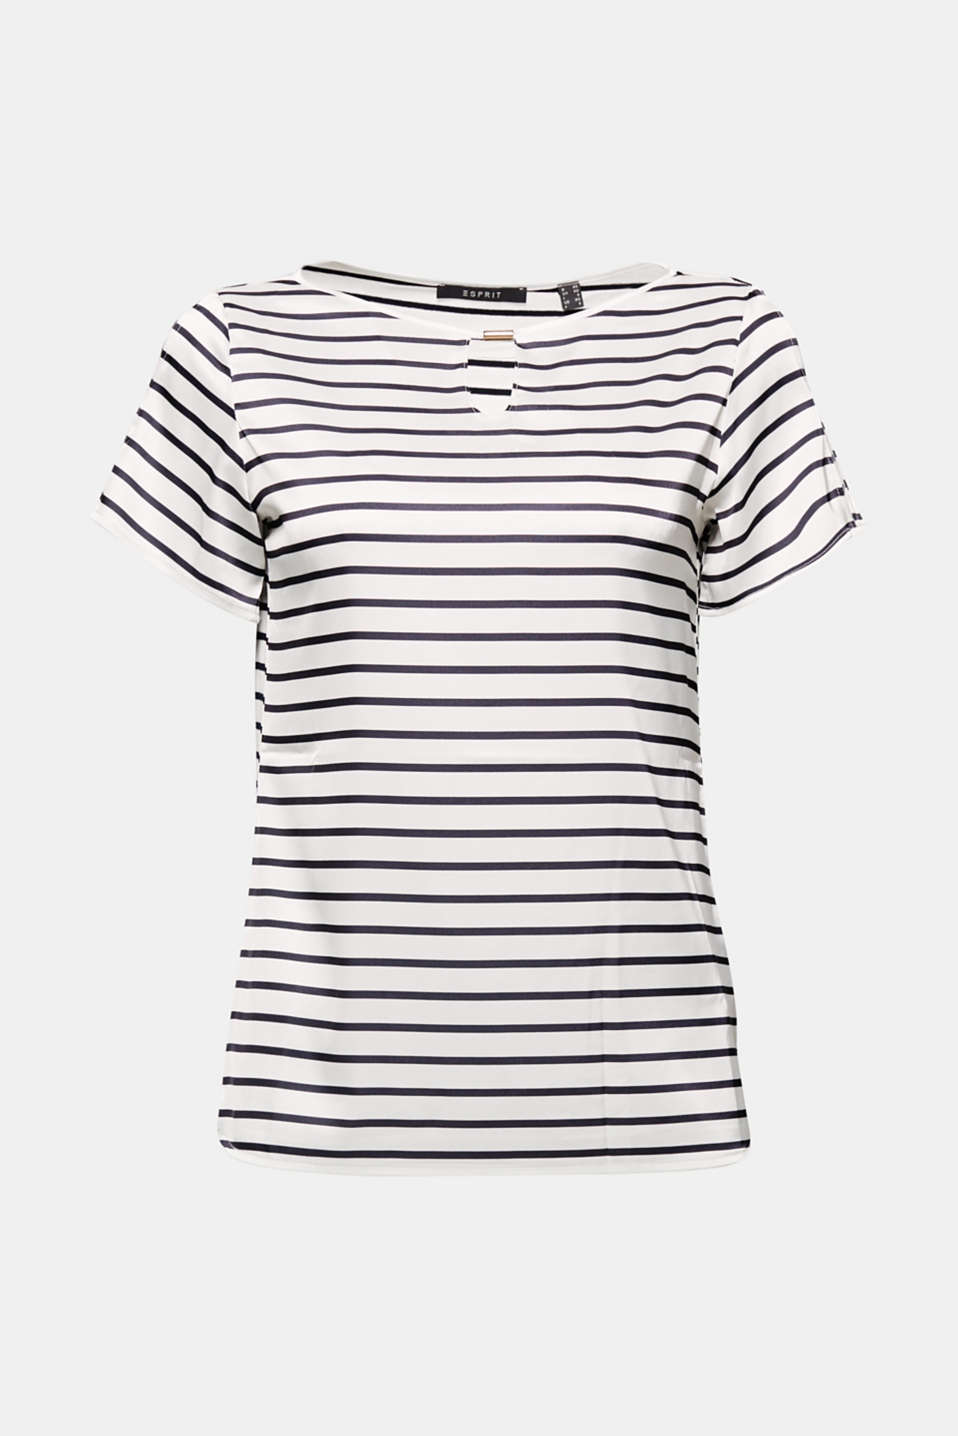 Lots of small eye-catching details give this striped T-shirt made of fashionable blended fabric new nautical charm!